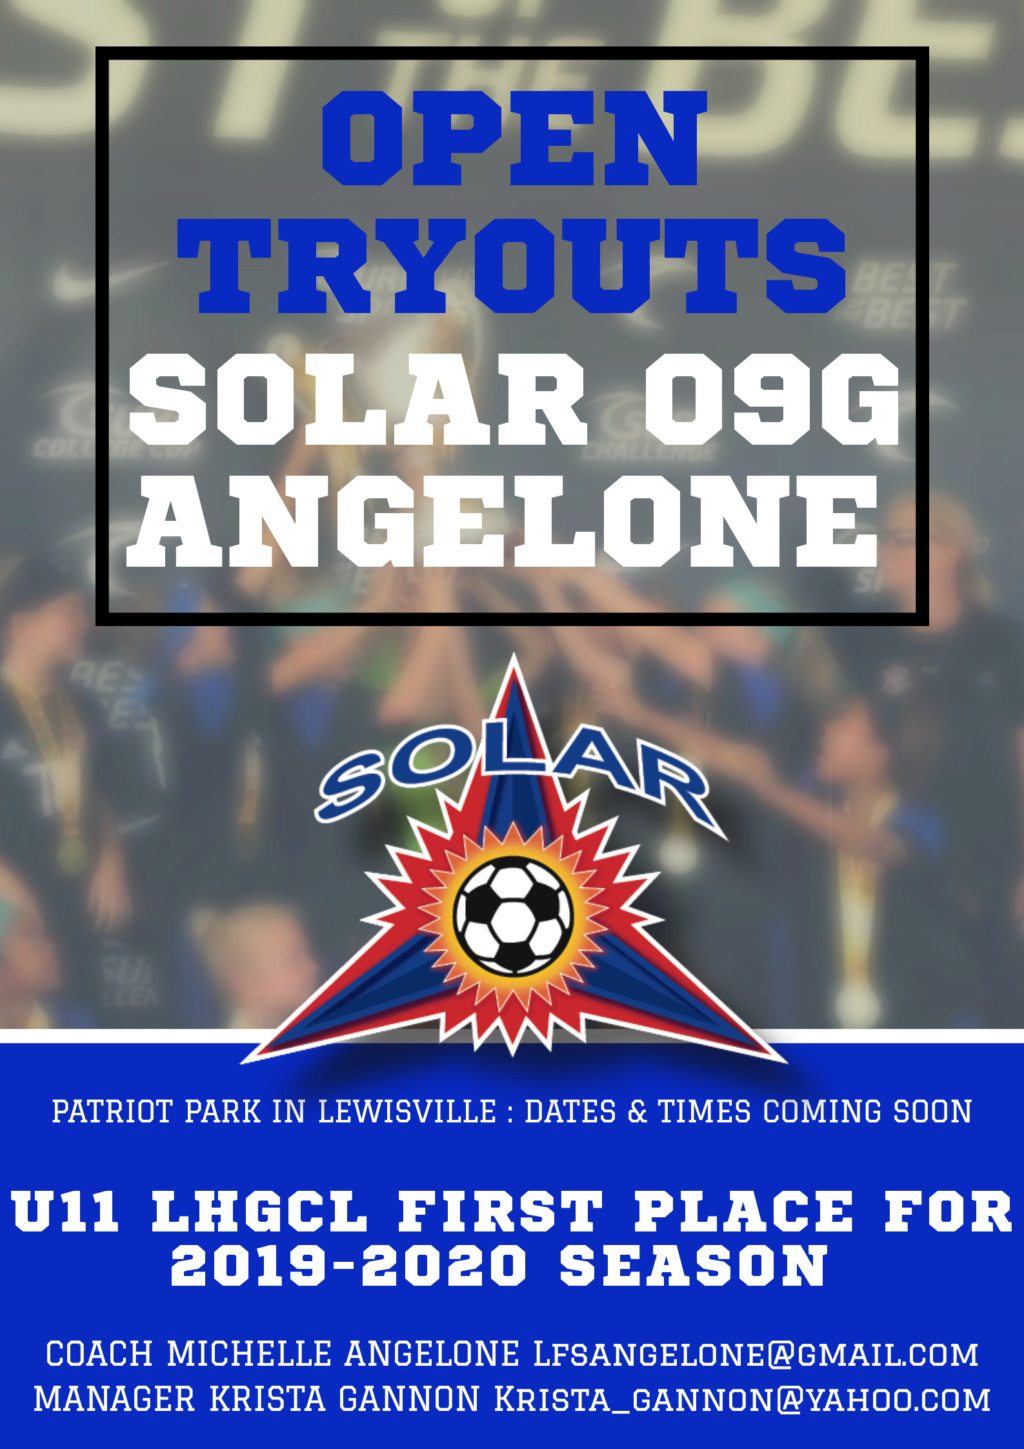 Solar 09G Angelone tryouts 4f9cb810